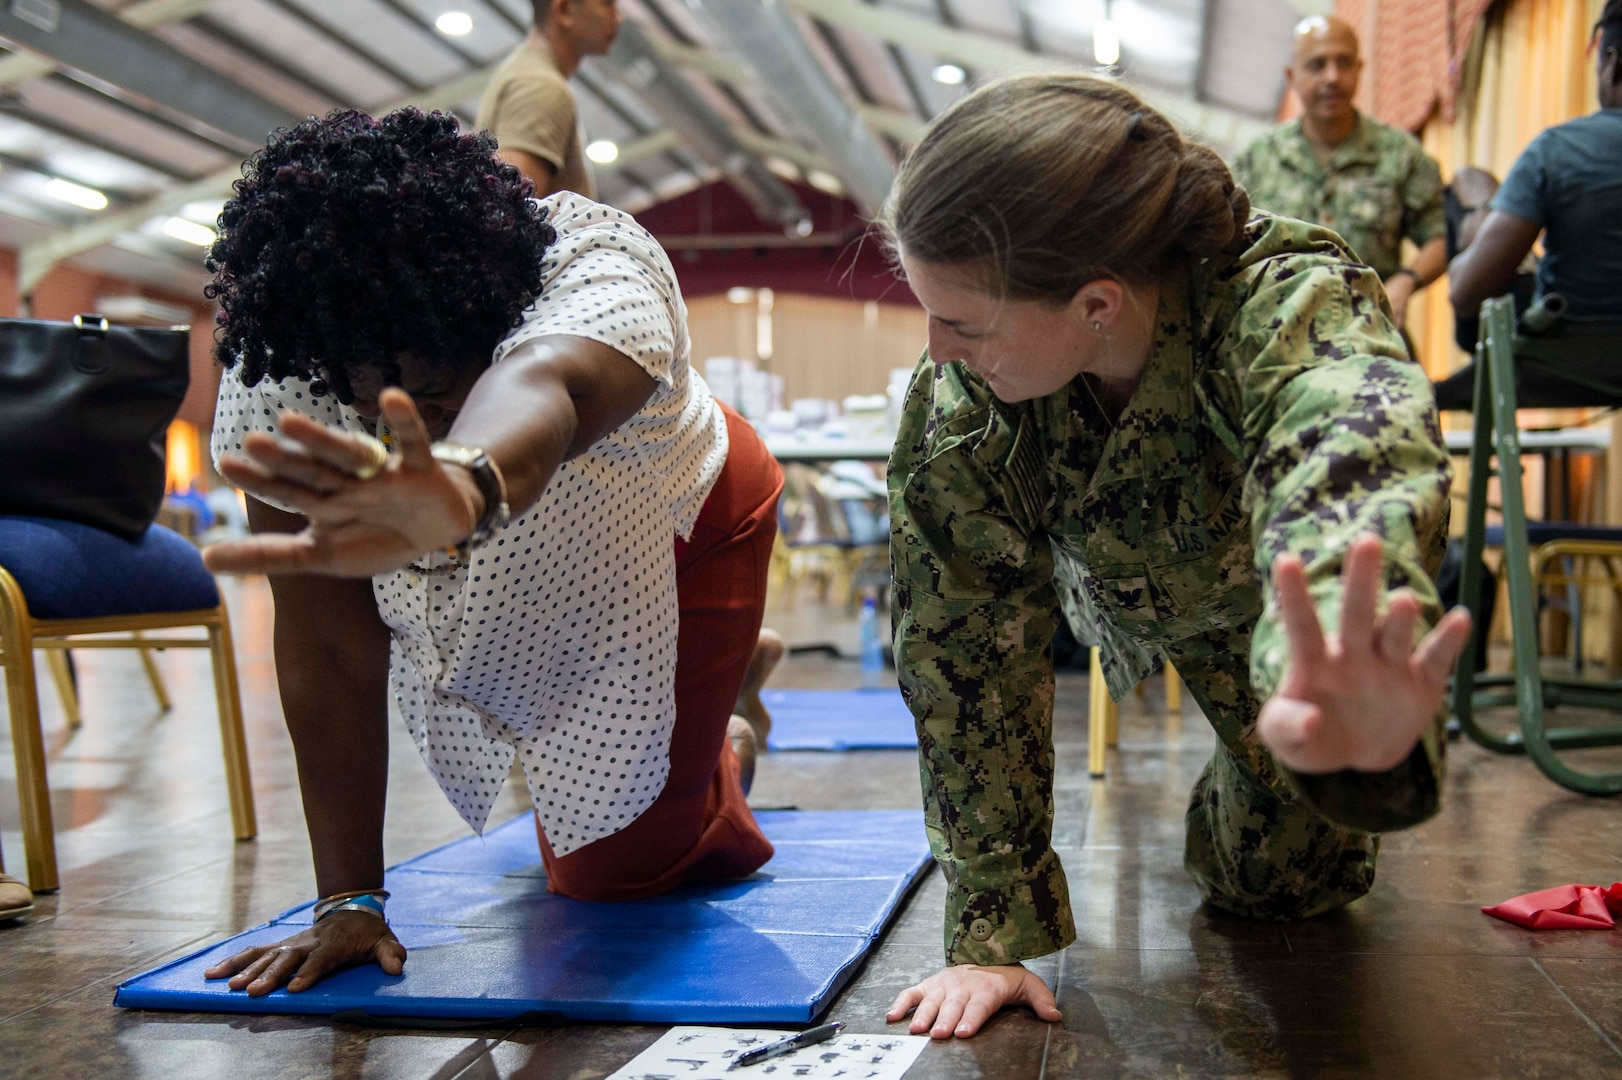 A physical therapist teaches stretching exercises to a Grenadian woman